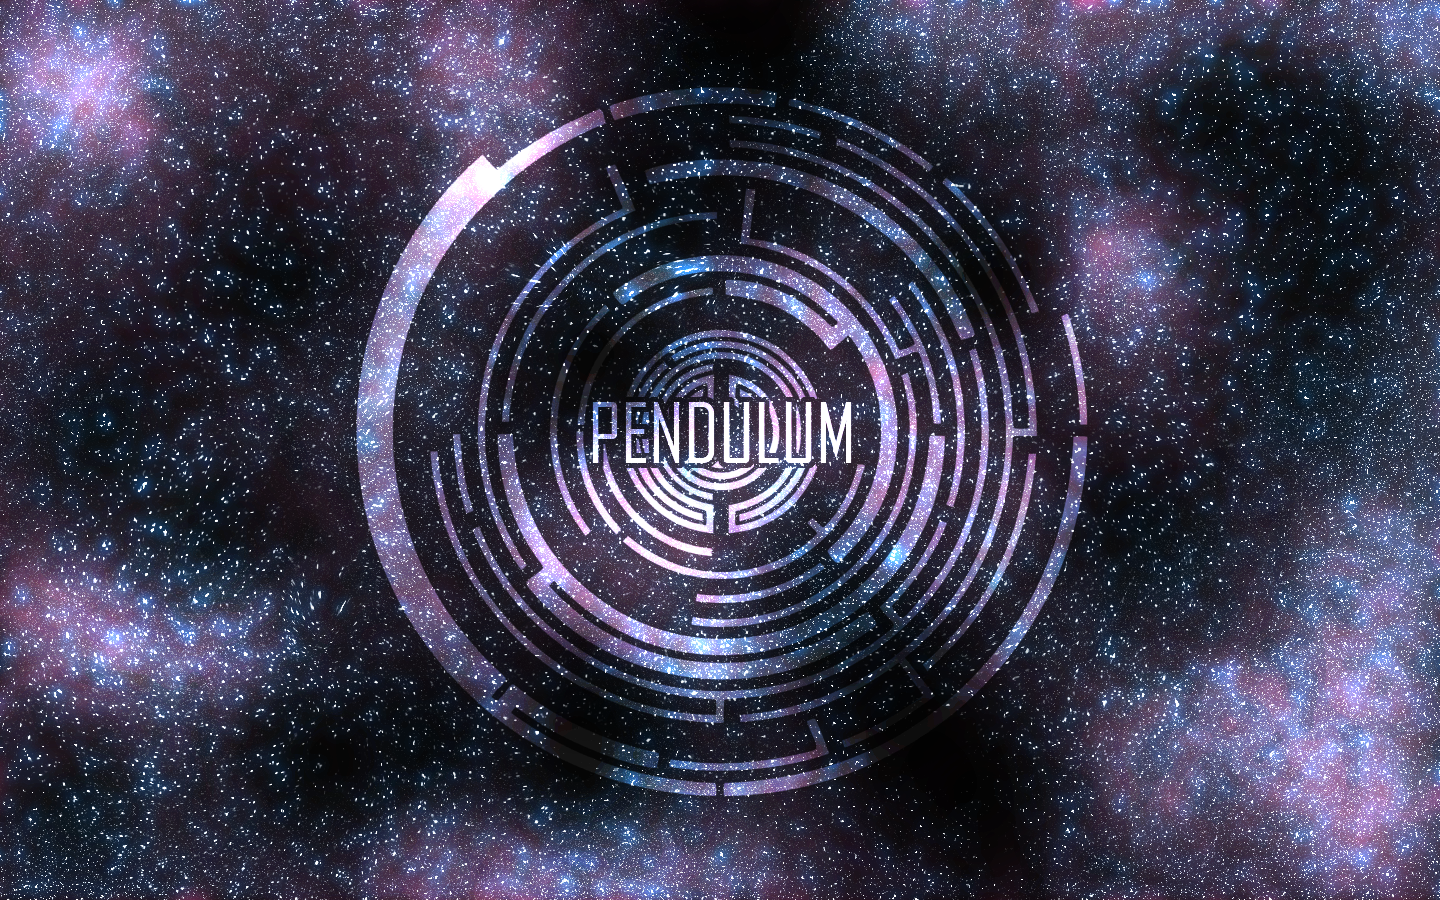 Pendulum Wallpapers, 1440x900 px | Wallpapers PC Gallery